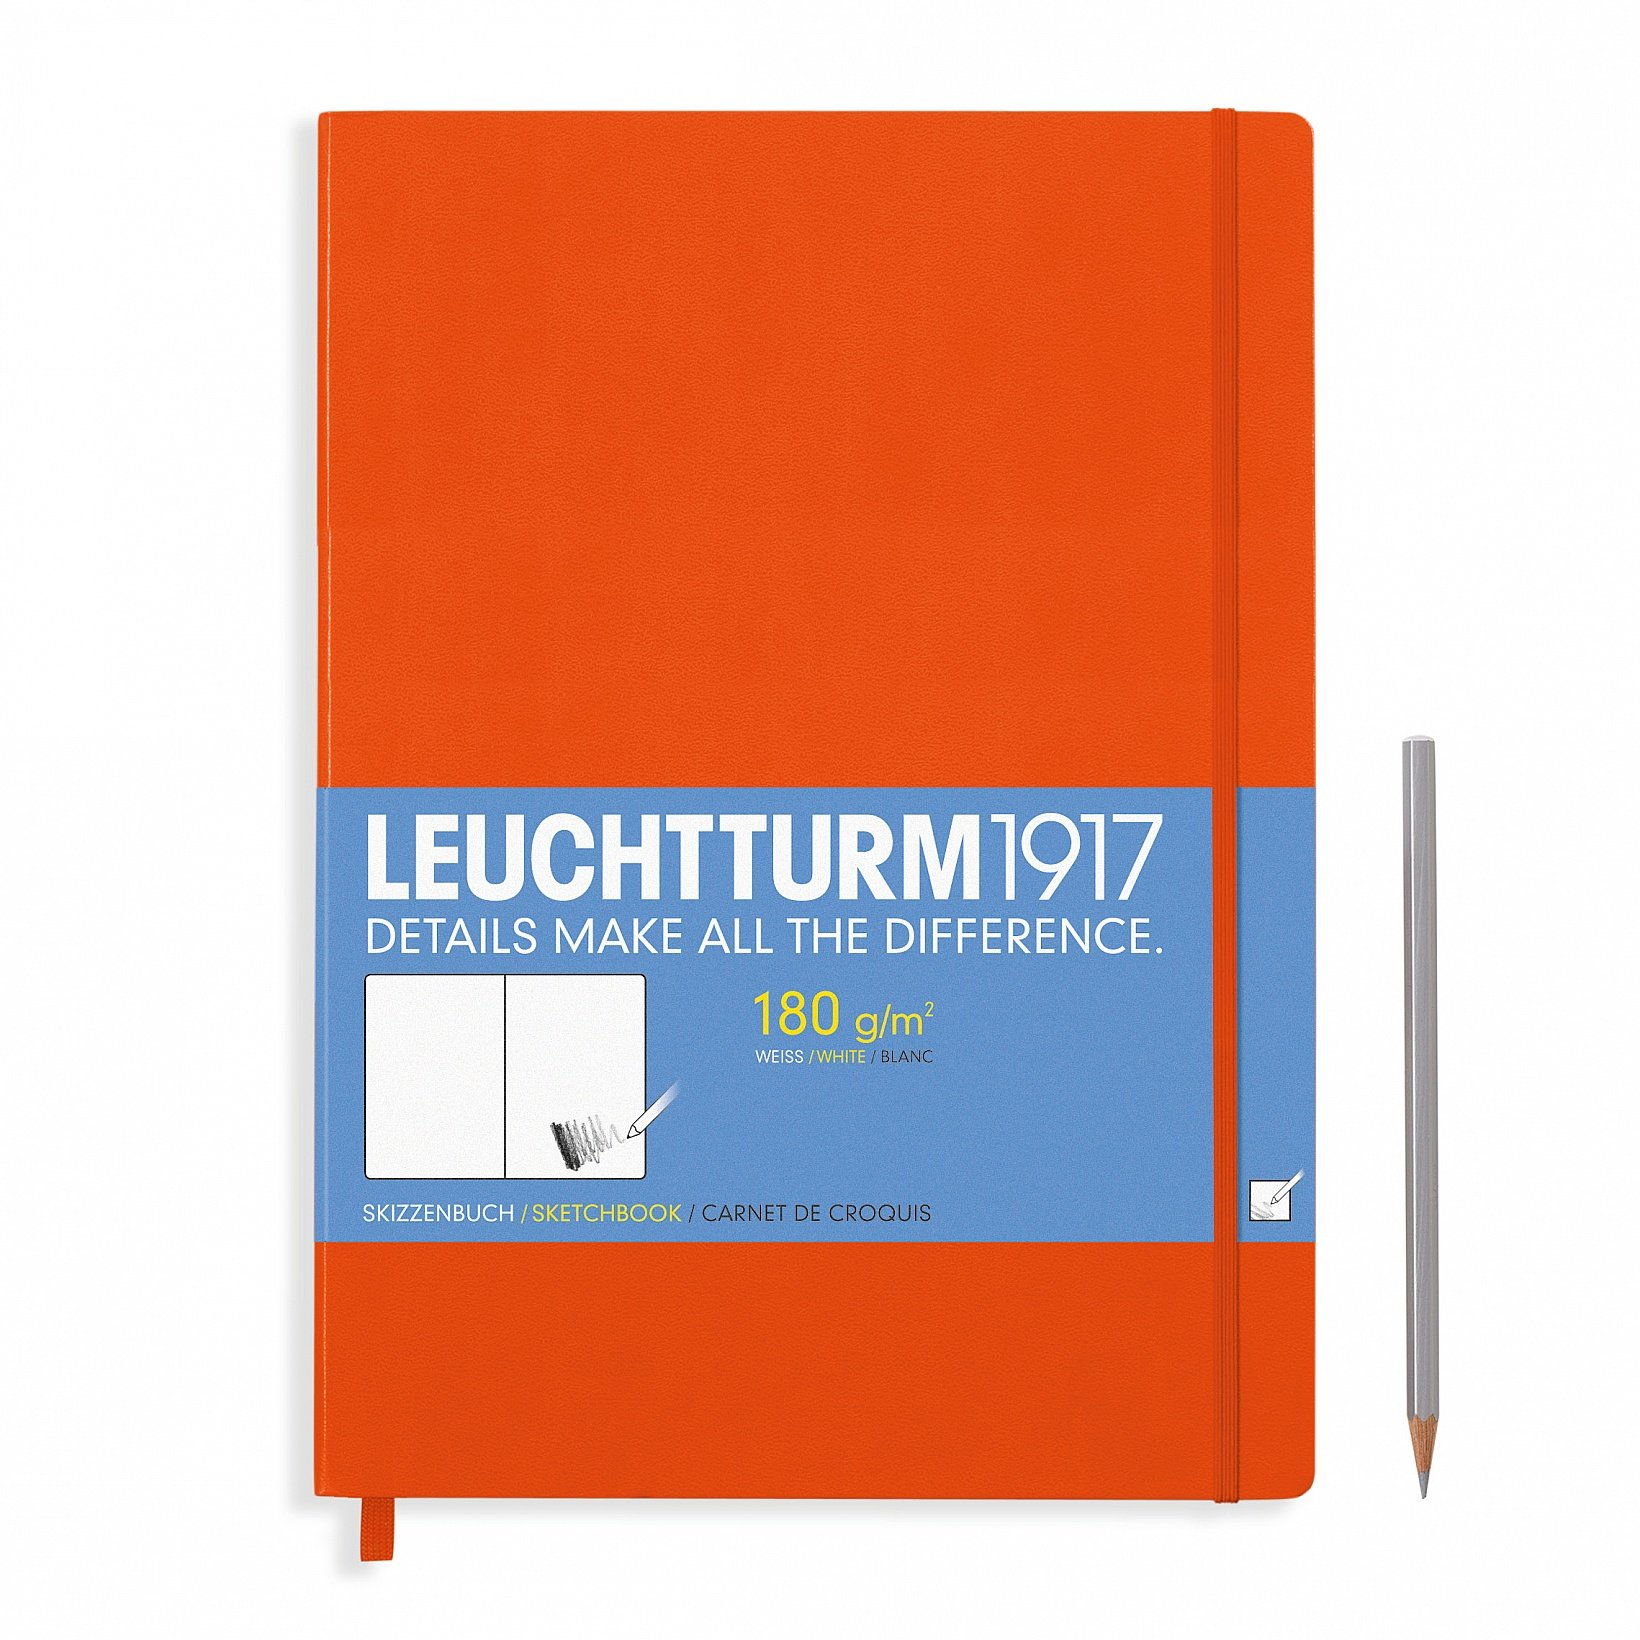 Leuchtturm1917 A4+ Master Hardcover Sketchbook, 8.85 X 12.5 inches, 96 Pages of 180g Brilliant White Plain Paper, Orange (345004) by LEUCHTTURM1917 (Image #1)